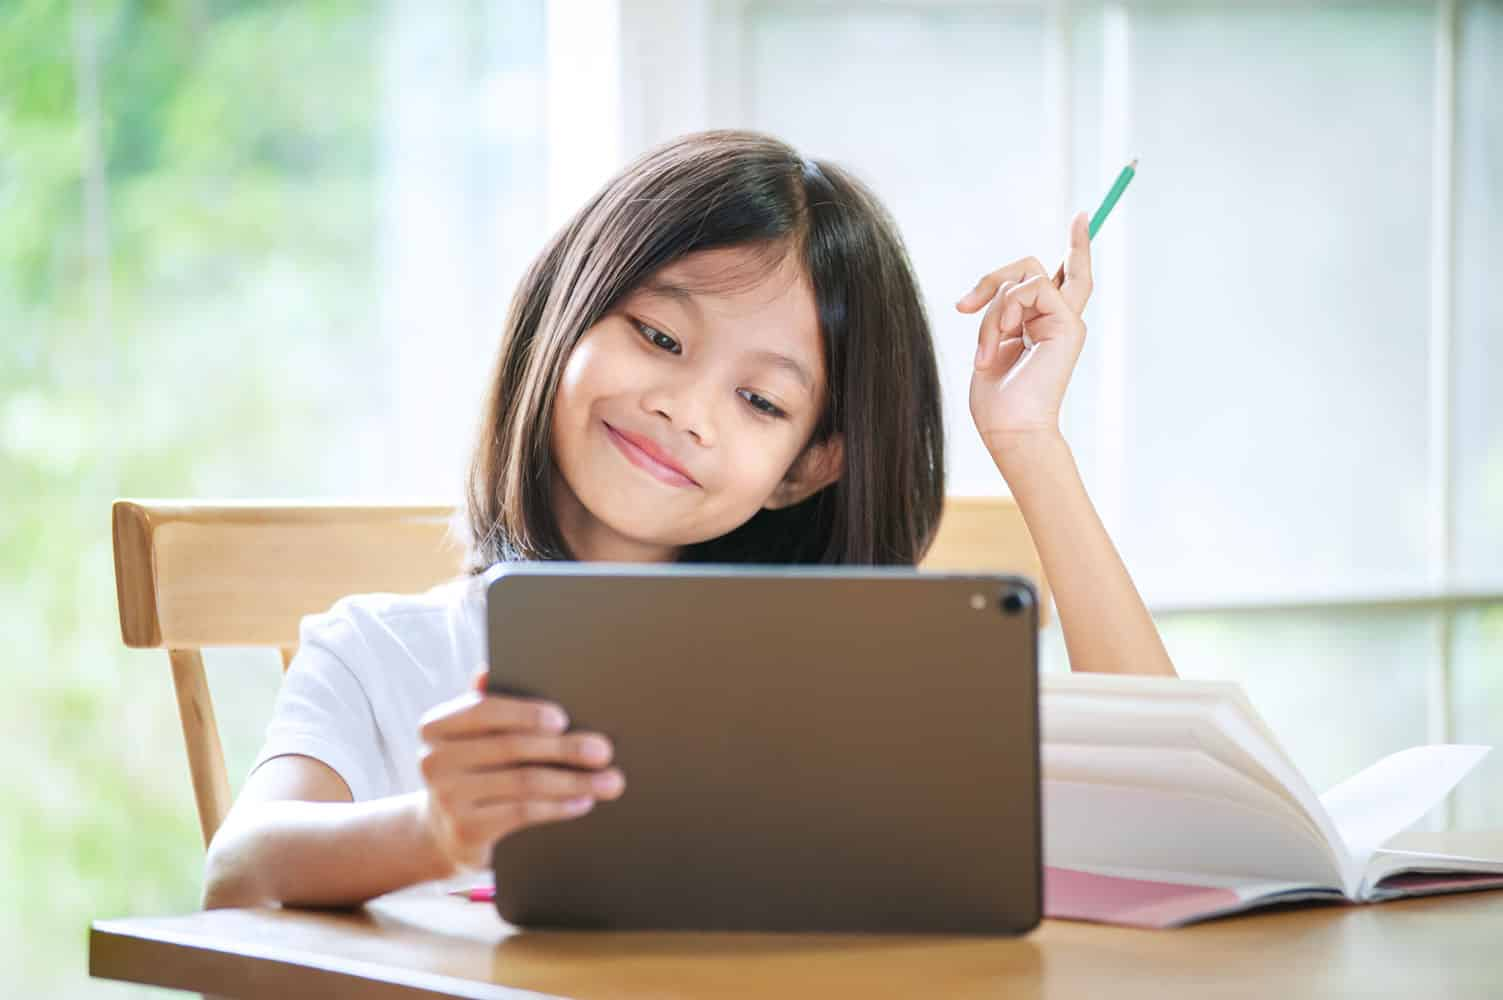 Virtual Learning Roundup: Lessons Learned About Making the Best Use of Distance Learning Resources